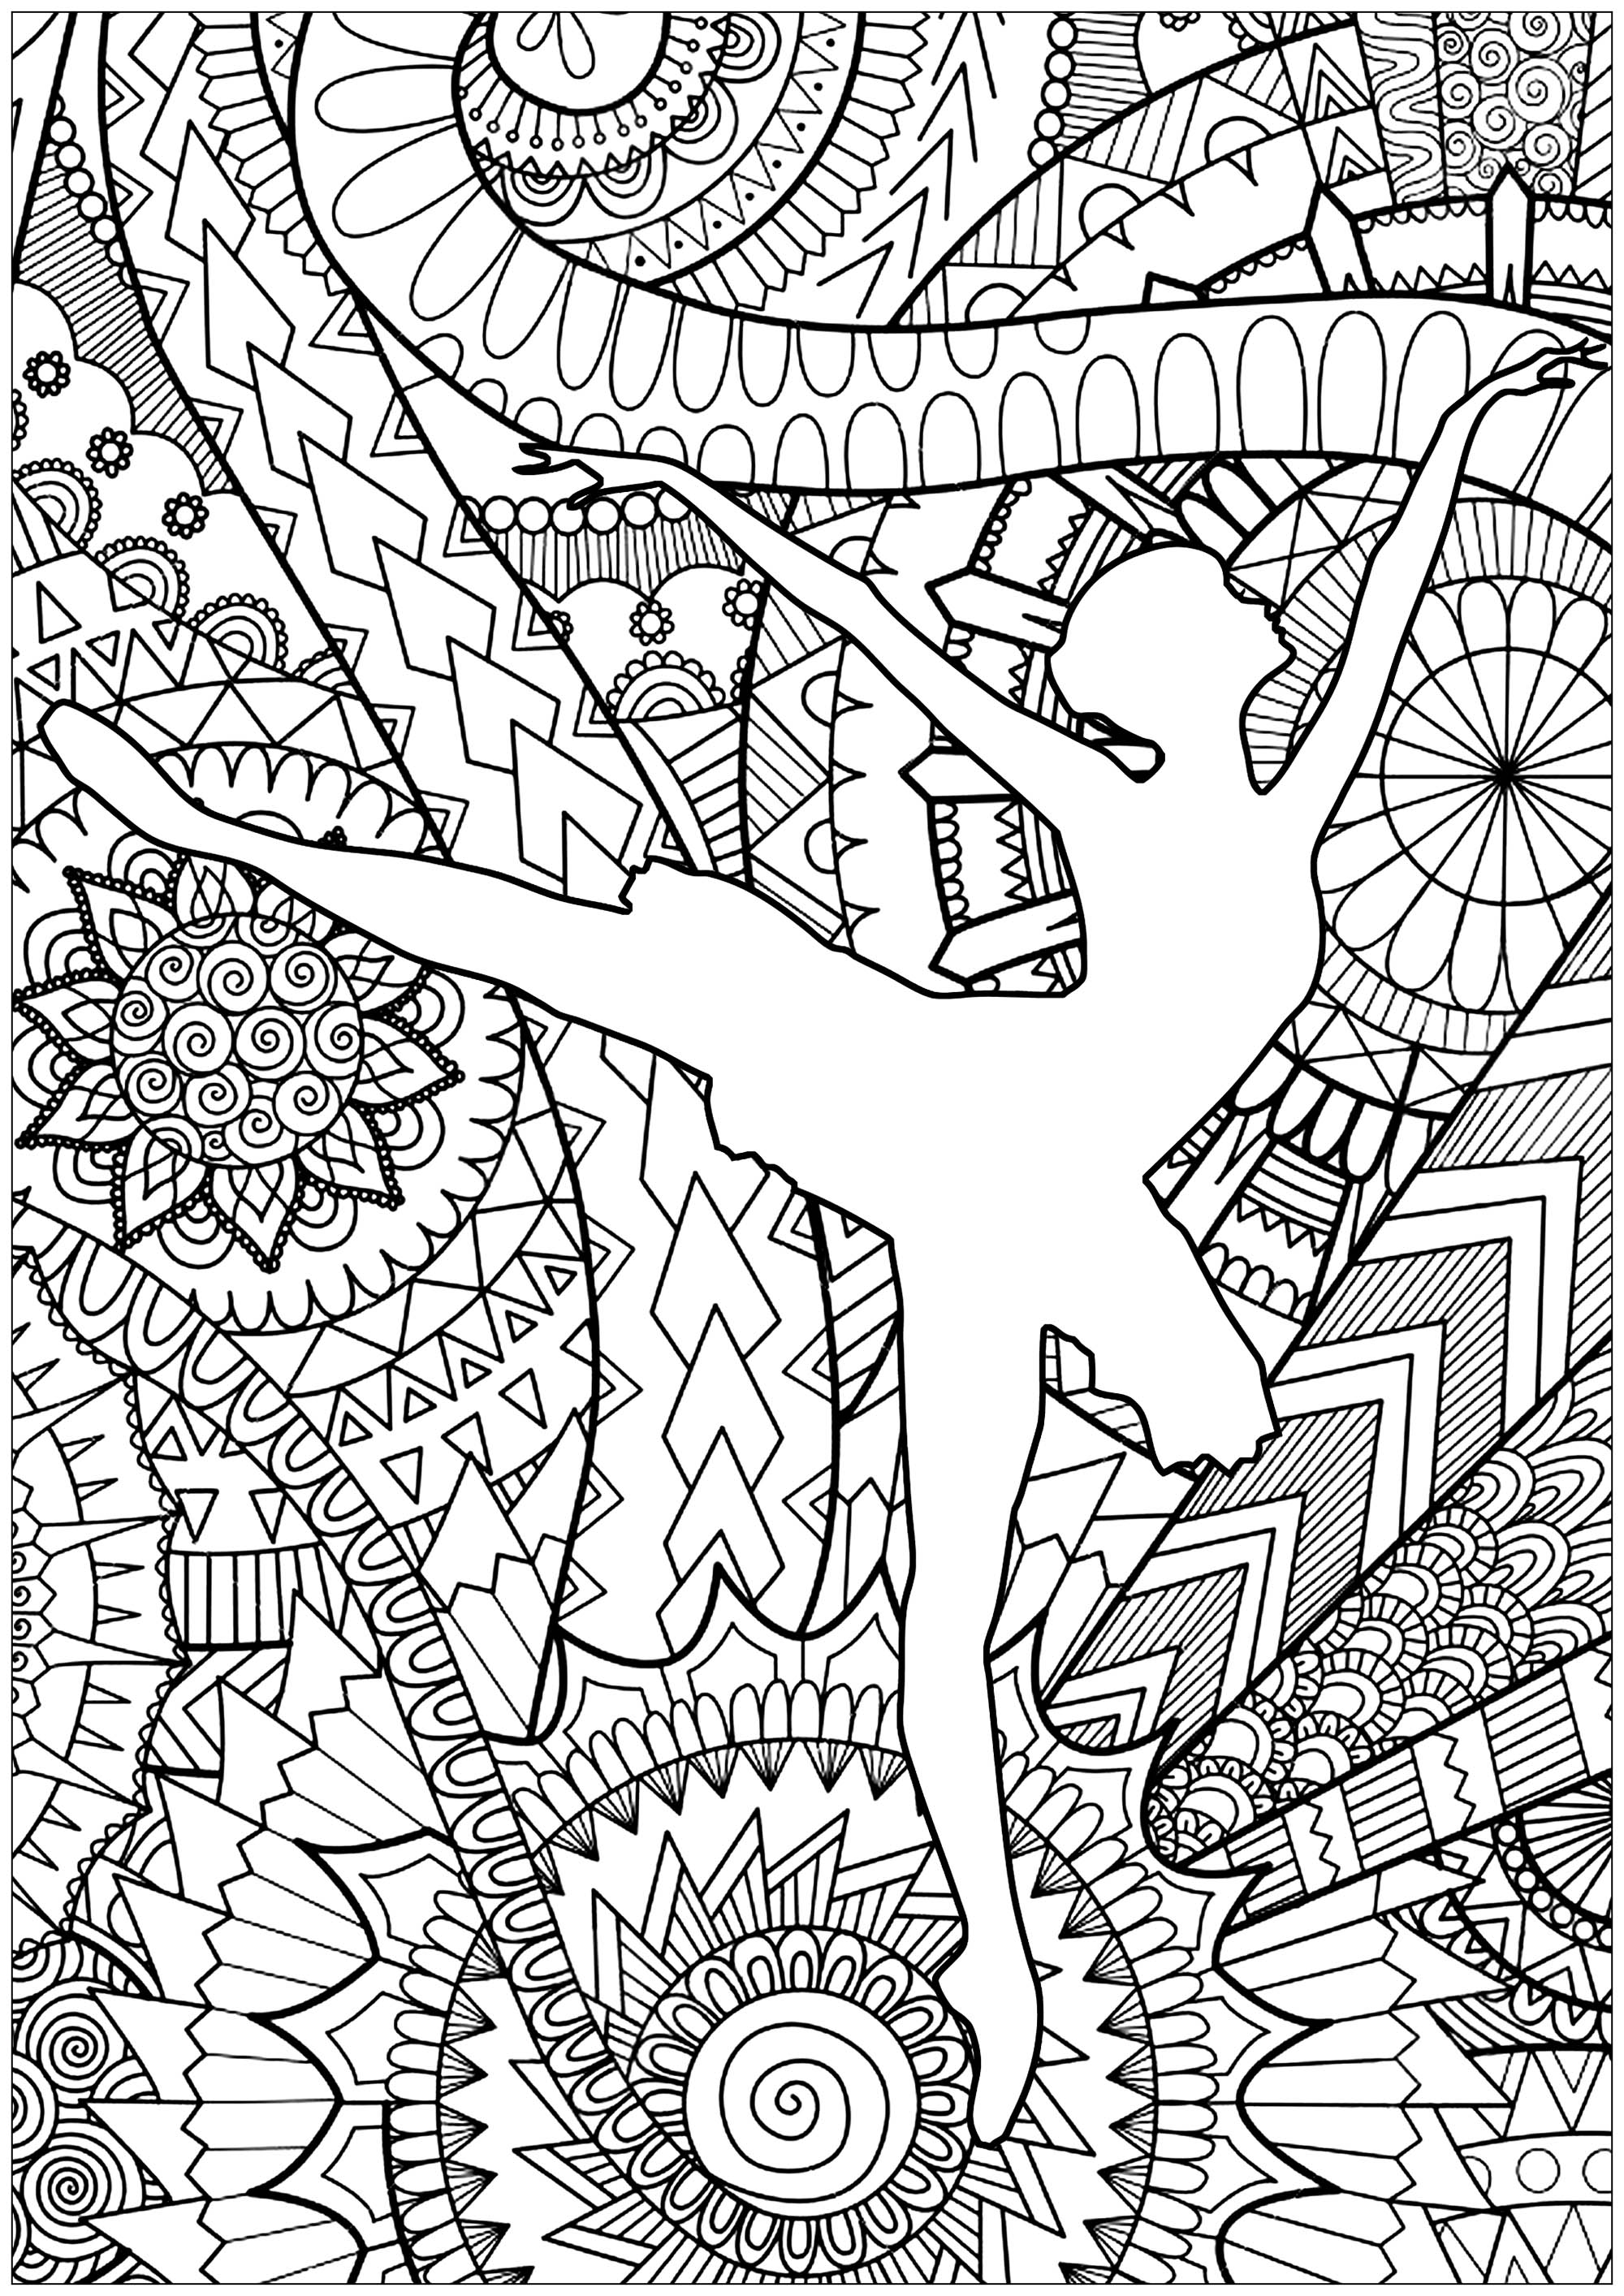 Coloriage Danse Adulte.Danseuse De Ballet Anti Stress Art Therapie Coloriages